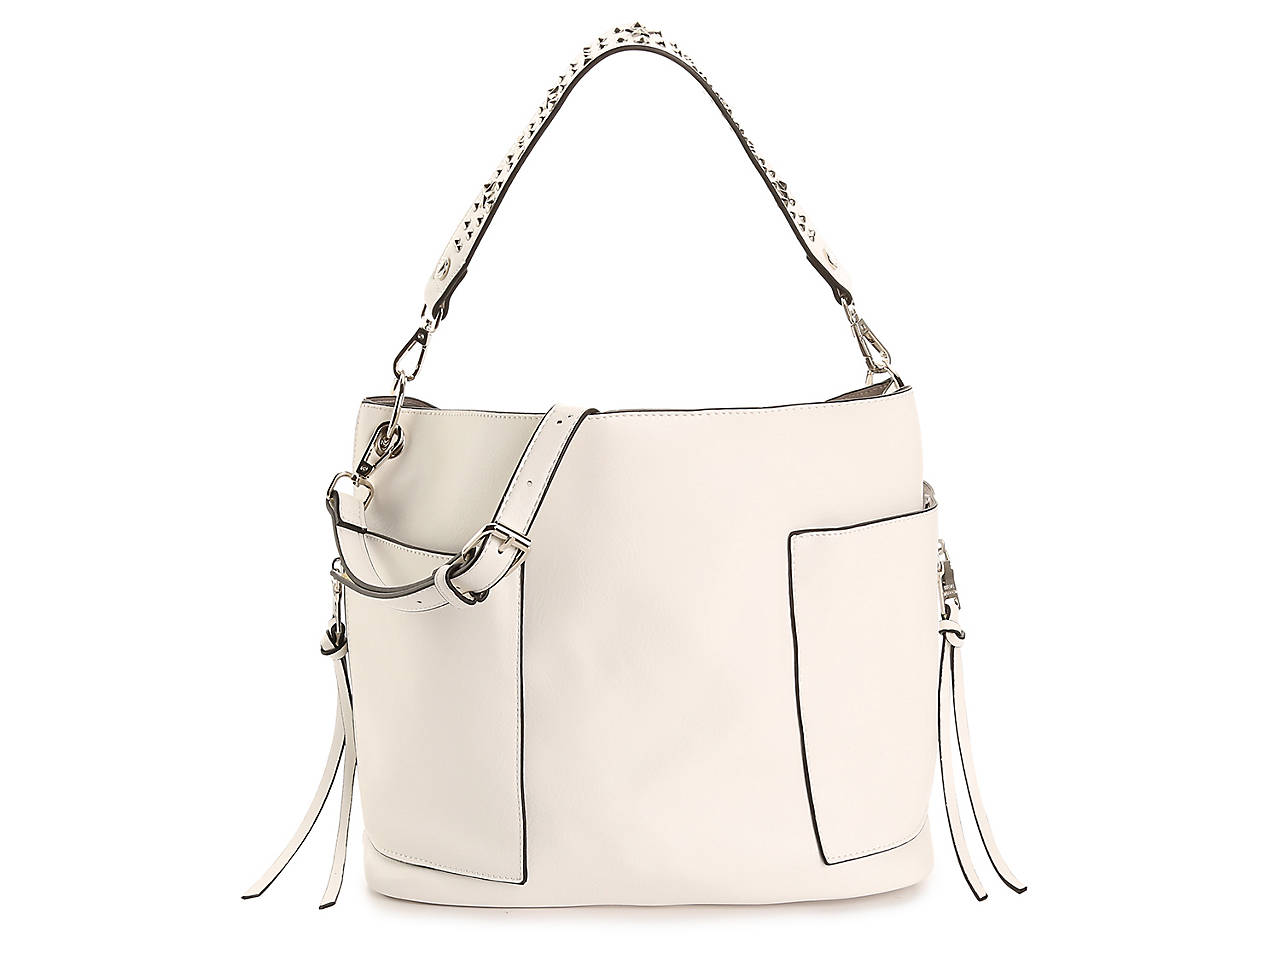 c2d2016a7af7 Steve Madden Bkoltt Hobo Bag Women s Handbags   Accessories